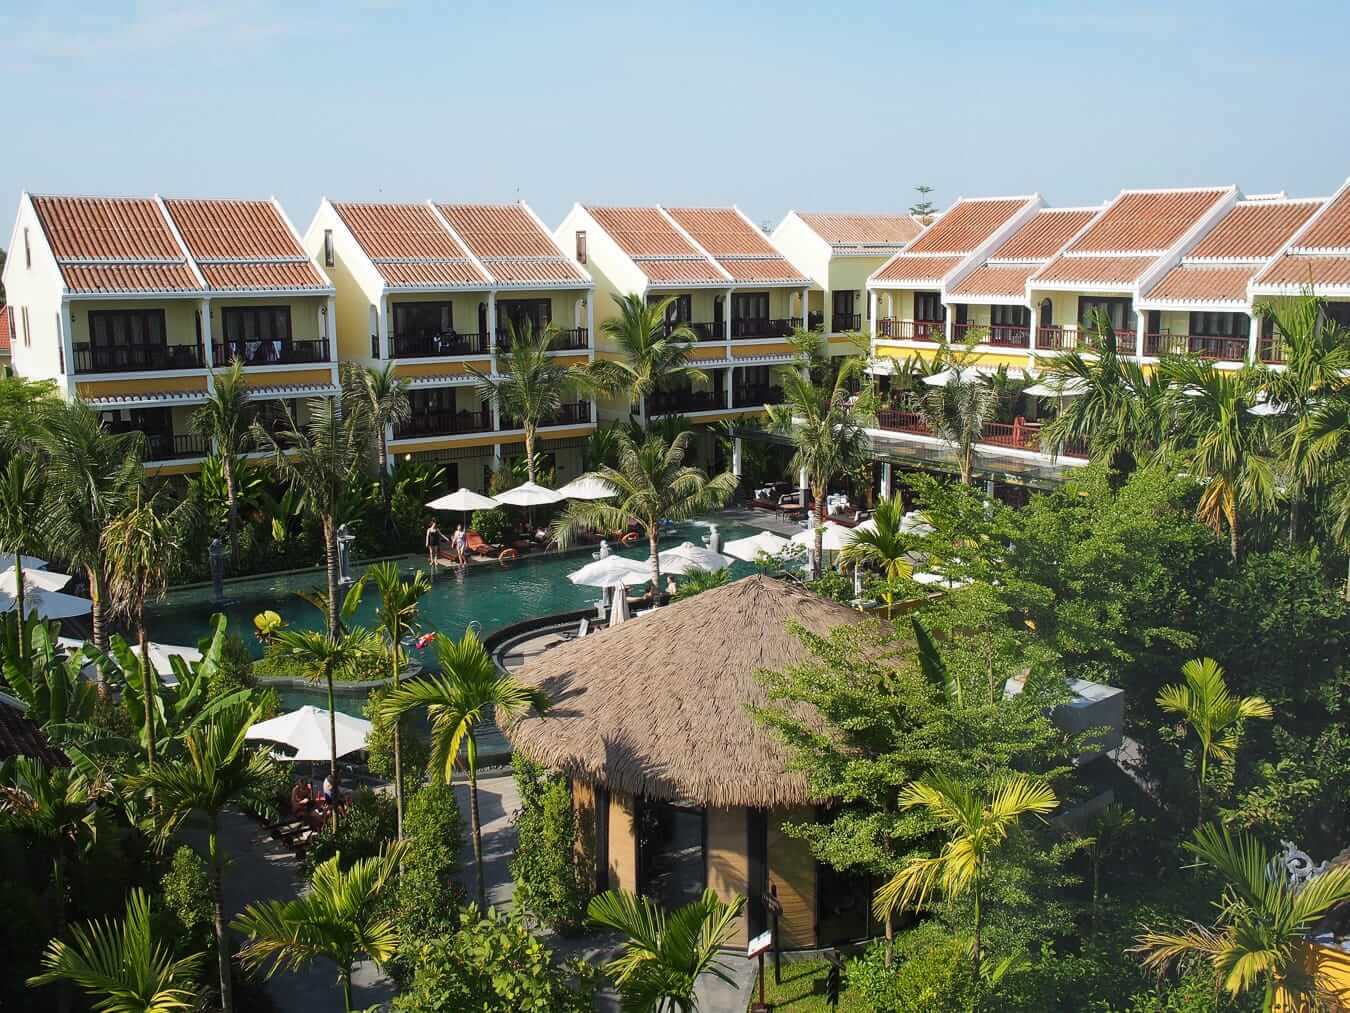 La Siesta: Where to stay in Hoi An